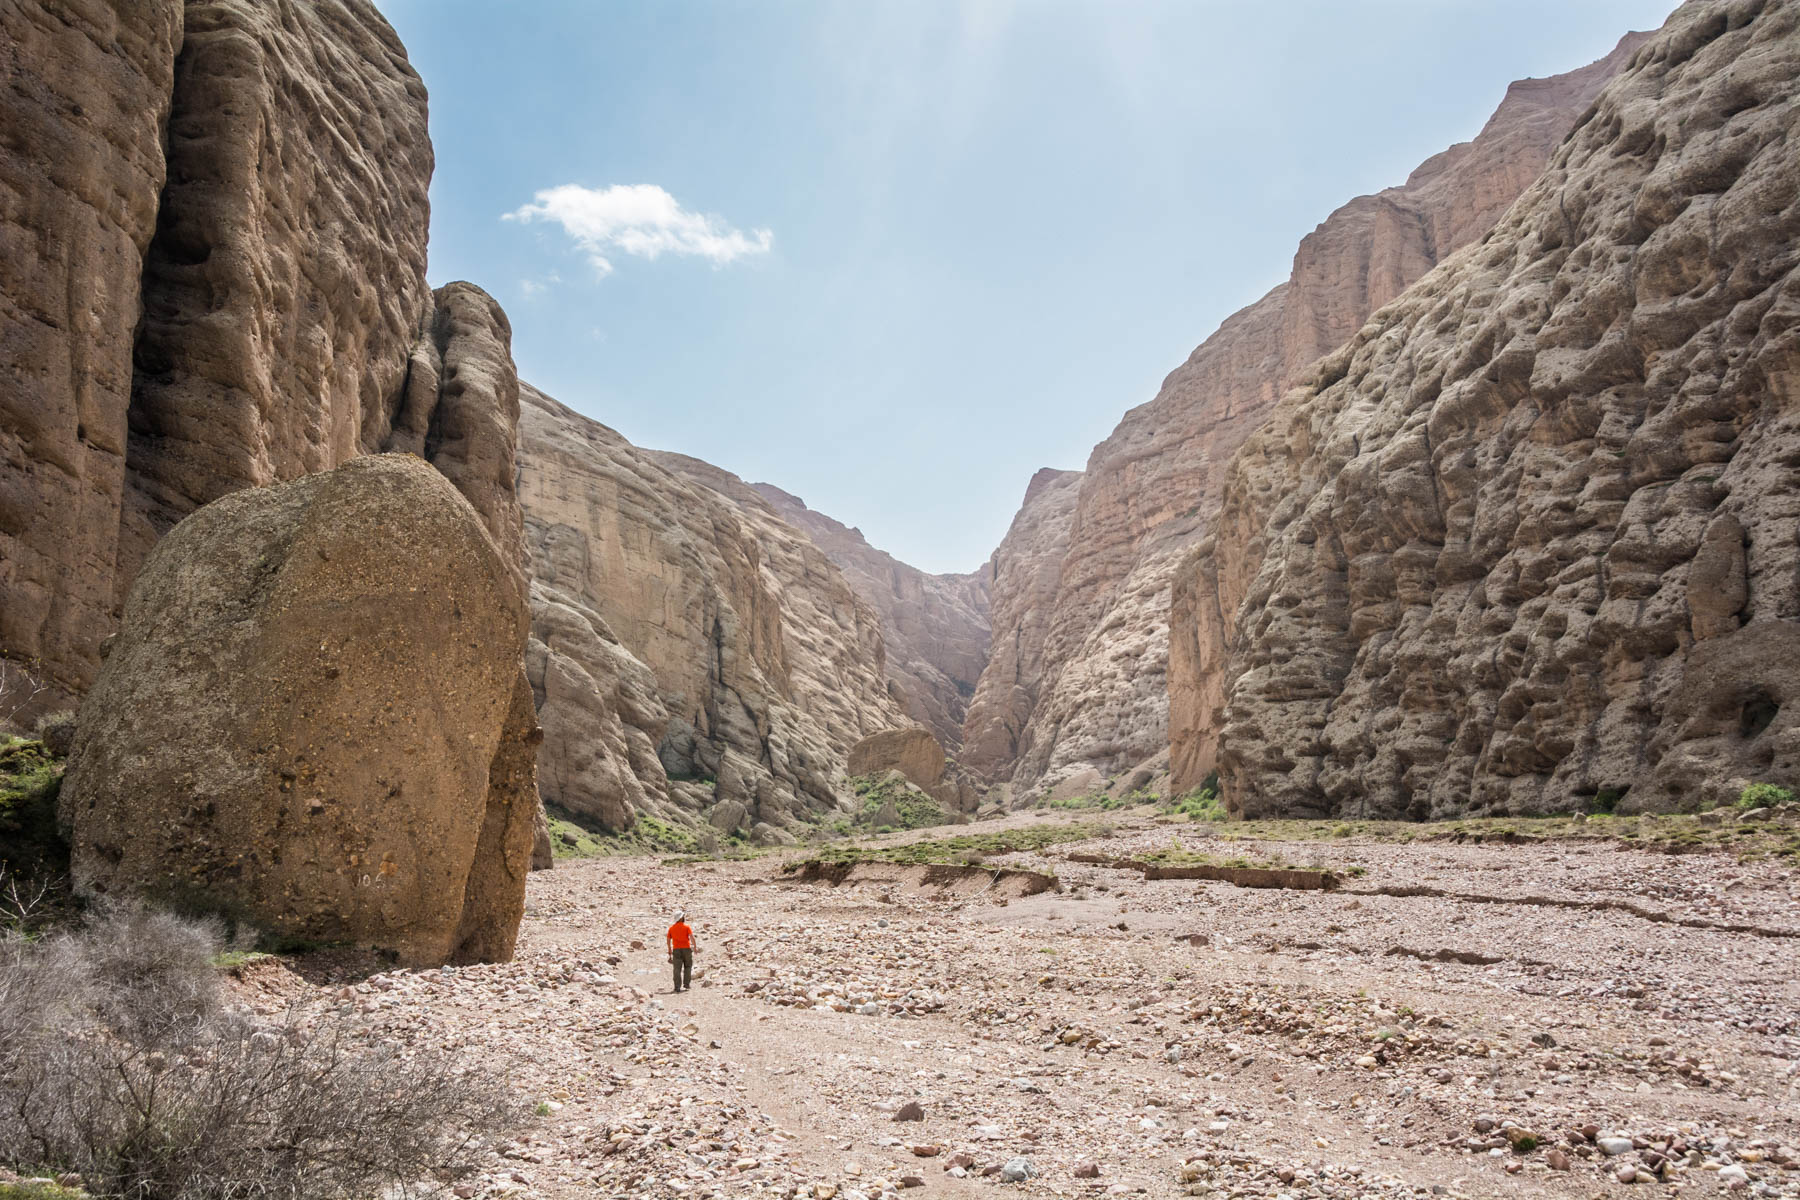 A man walking through the red rock gorges of the Alamut Valley in Iran.